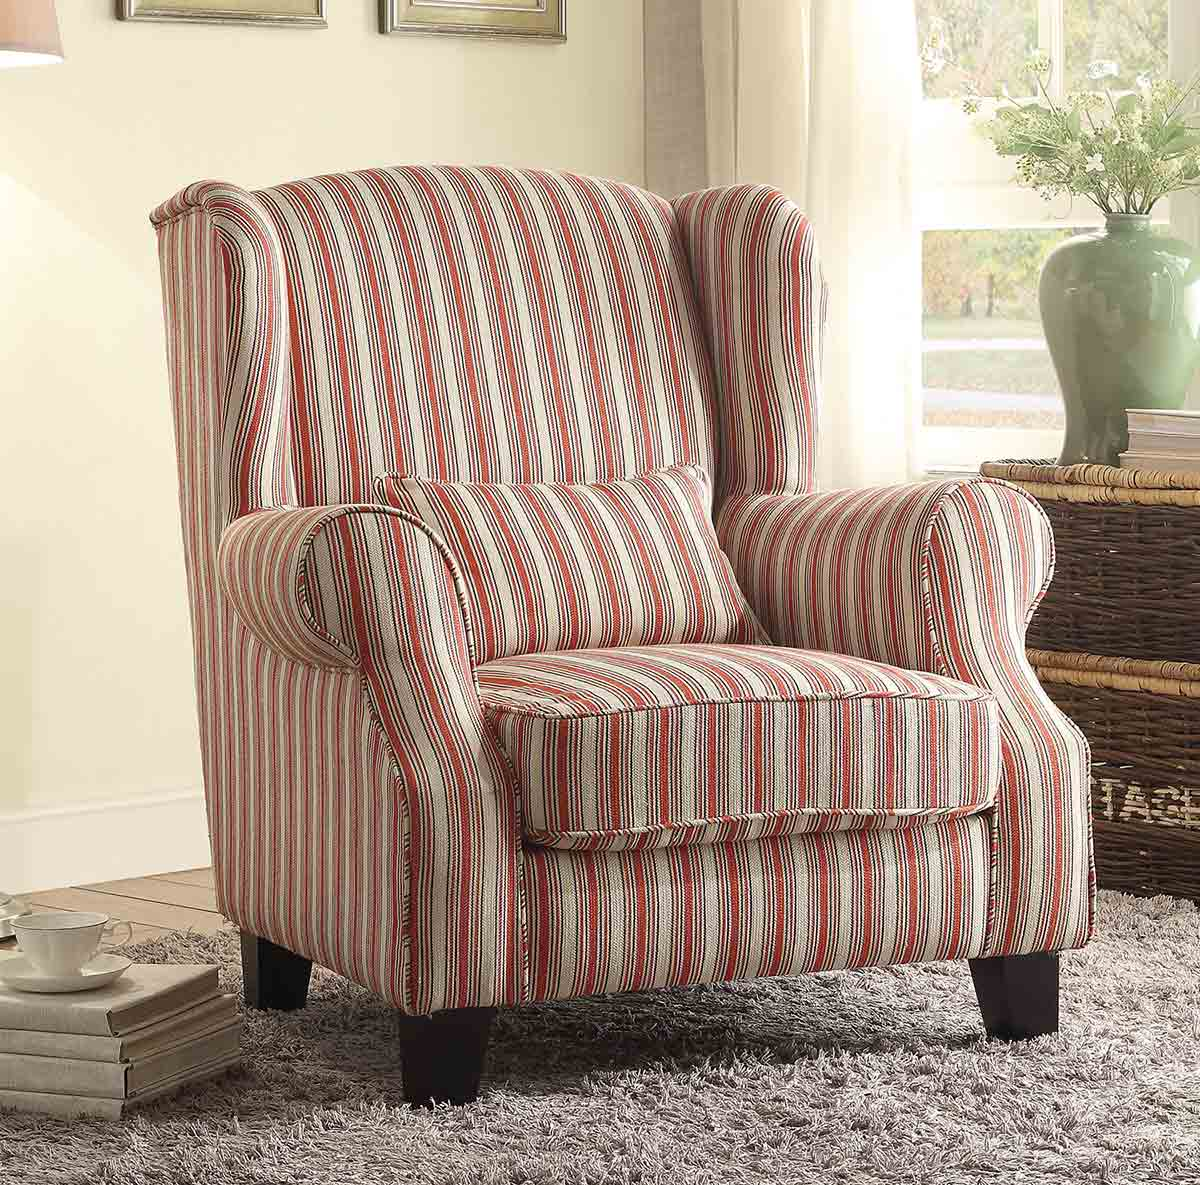 Homelegance La Verne Accent Chair With 1 Kidney Pillow Red Cream 1237F1S At